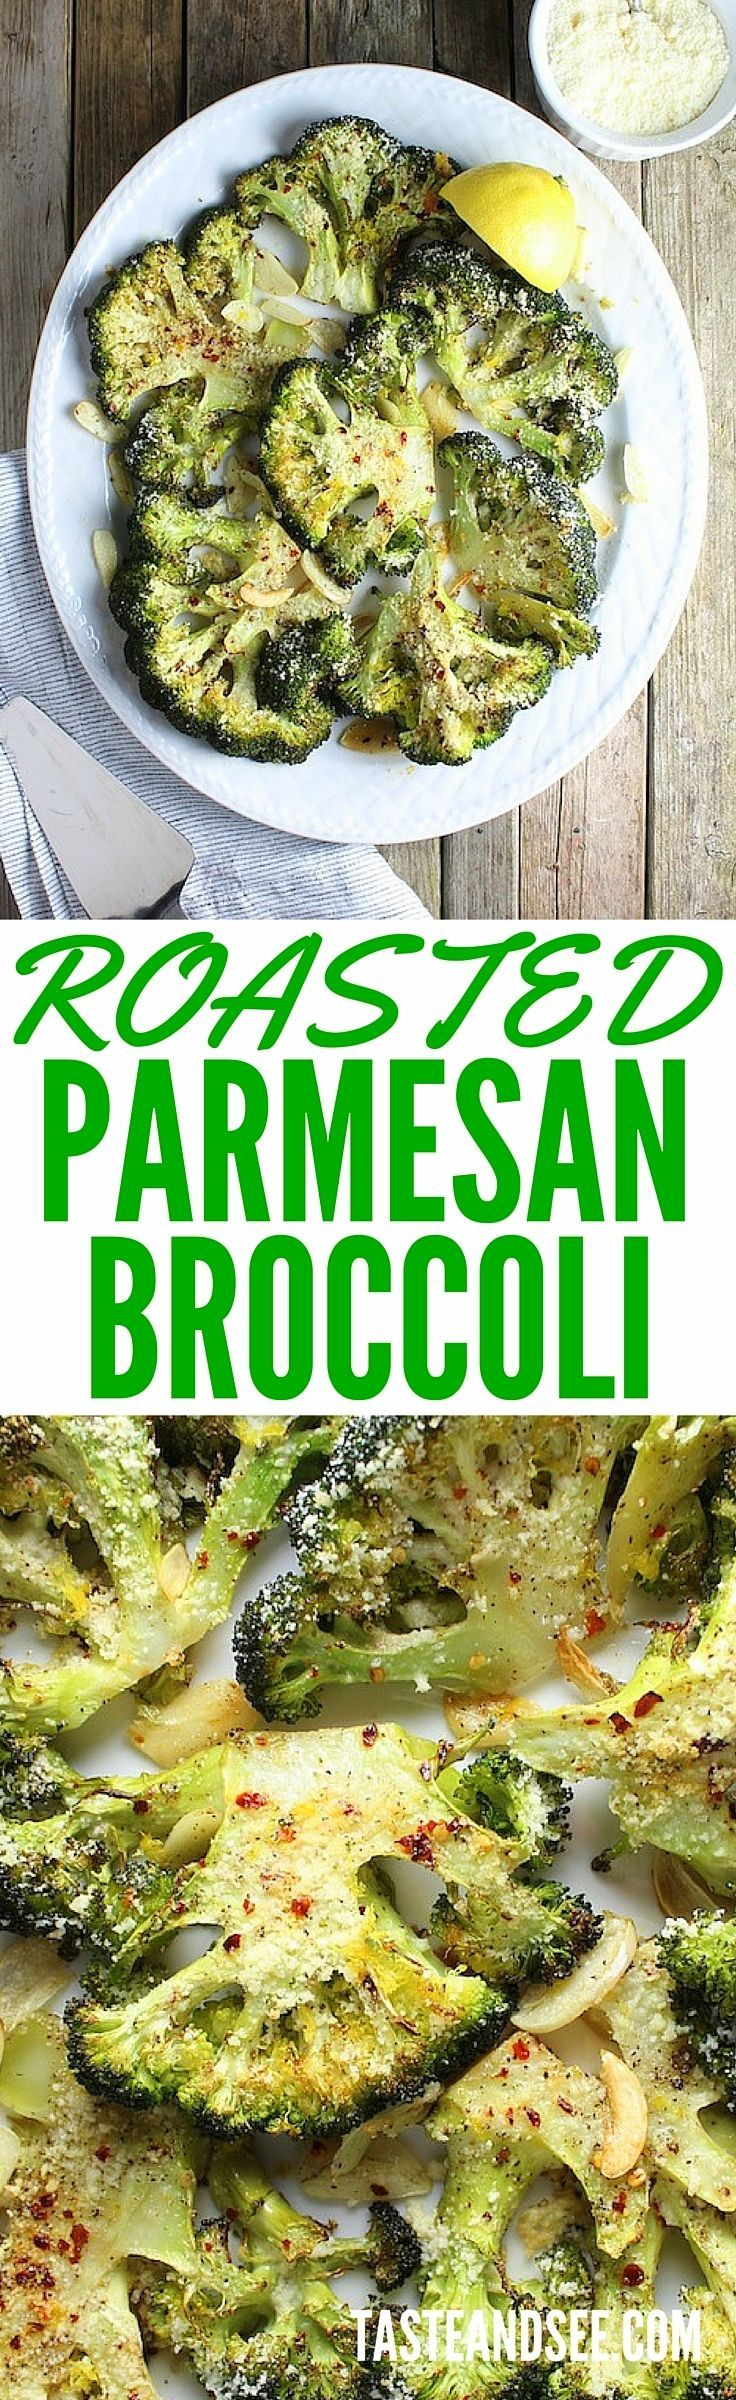 #woodworkingplans #woodworking #woodworkingprojects Roasted Parmesan Broccoli - Roasted with olive oil, Parmesan cheese, sliced garlic, and finished with lemon zest. Super simple & healthy, this is a yummy, easy veggie dish. tasteandsee.com